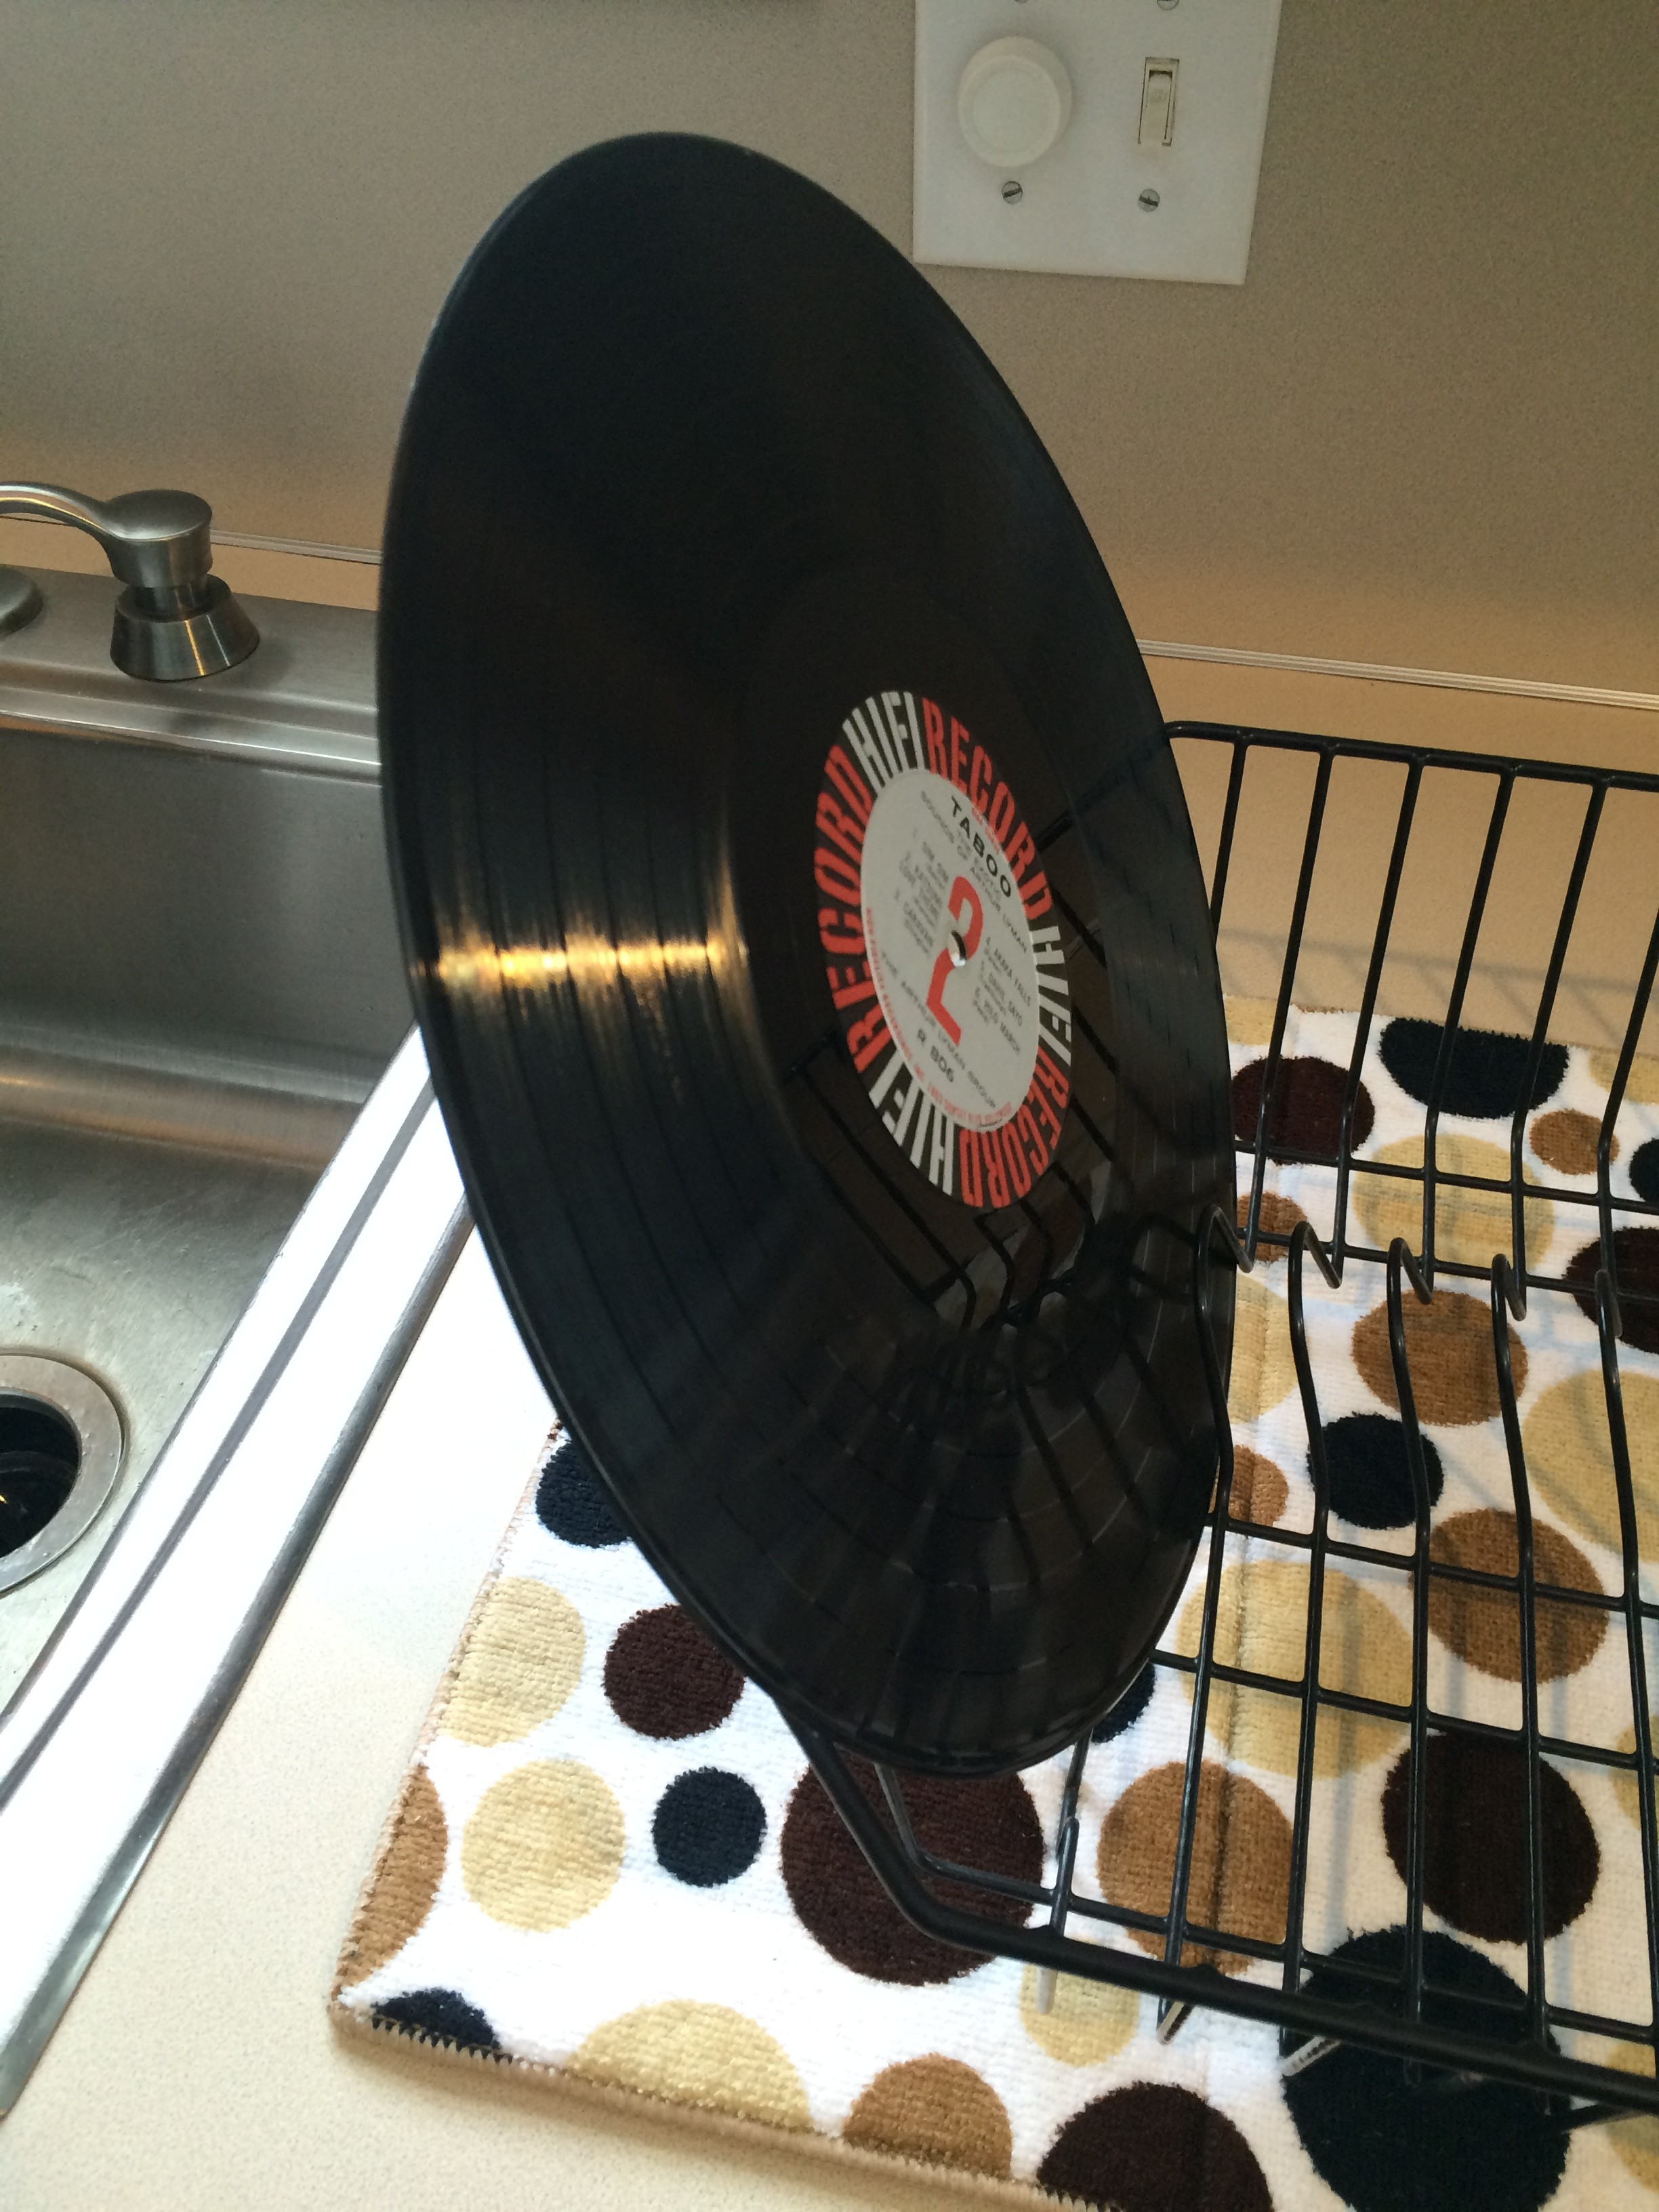 Diy Vinyl Record Cleaning Cheap And Easy Brainstembob